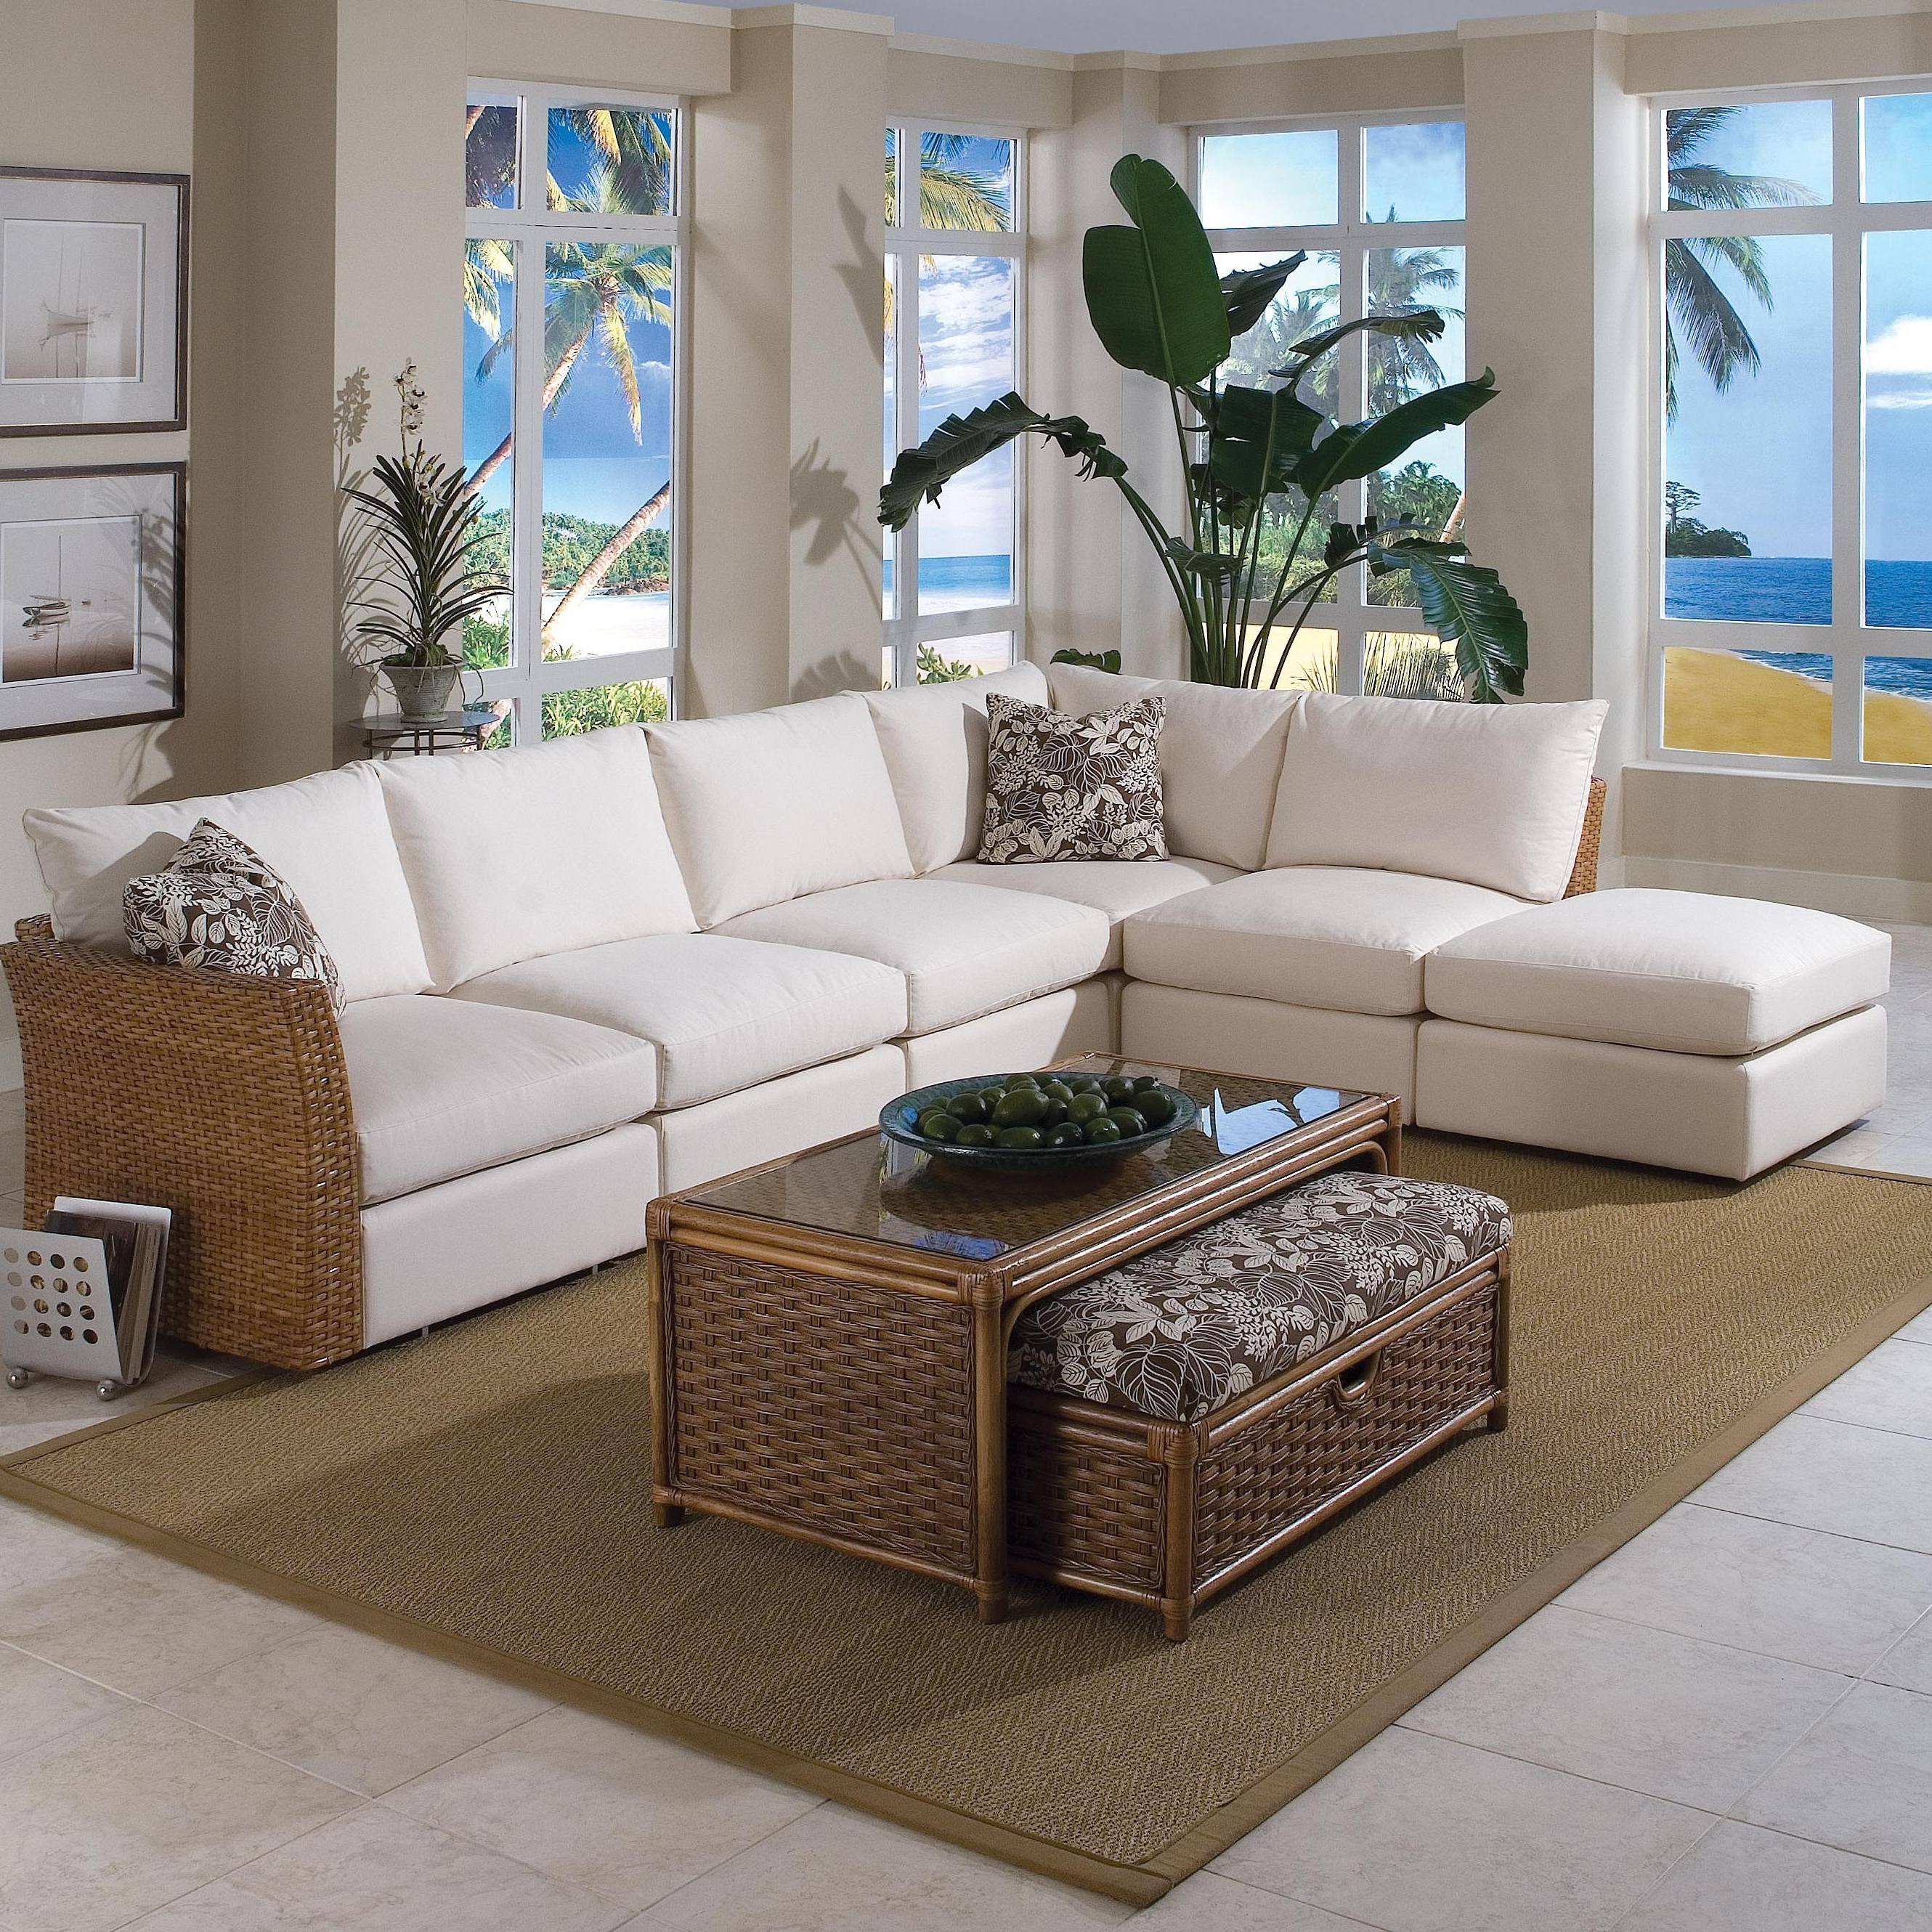 Fashionable Kanes Sectional Sofas Within Braxton Culler Grand Water Point Tropical Sectional Sofa With Two (View 6 of 15)